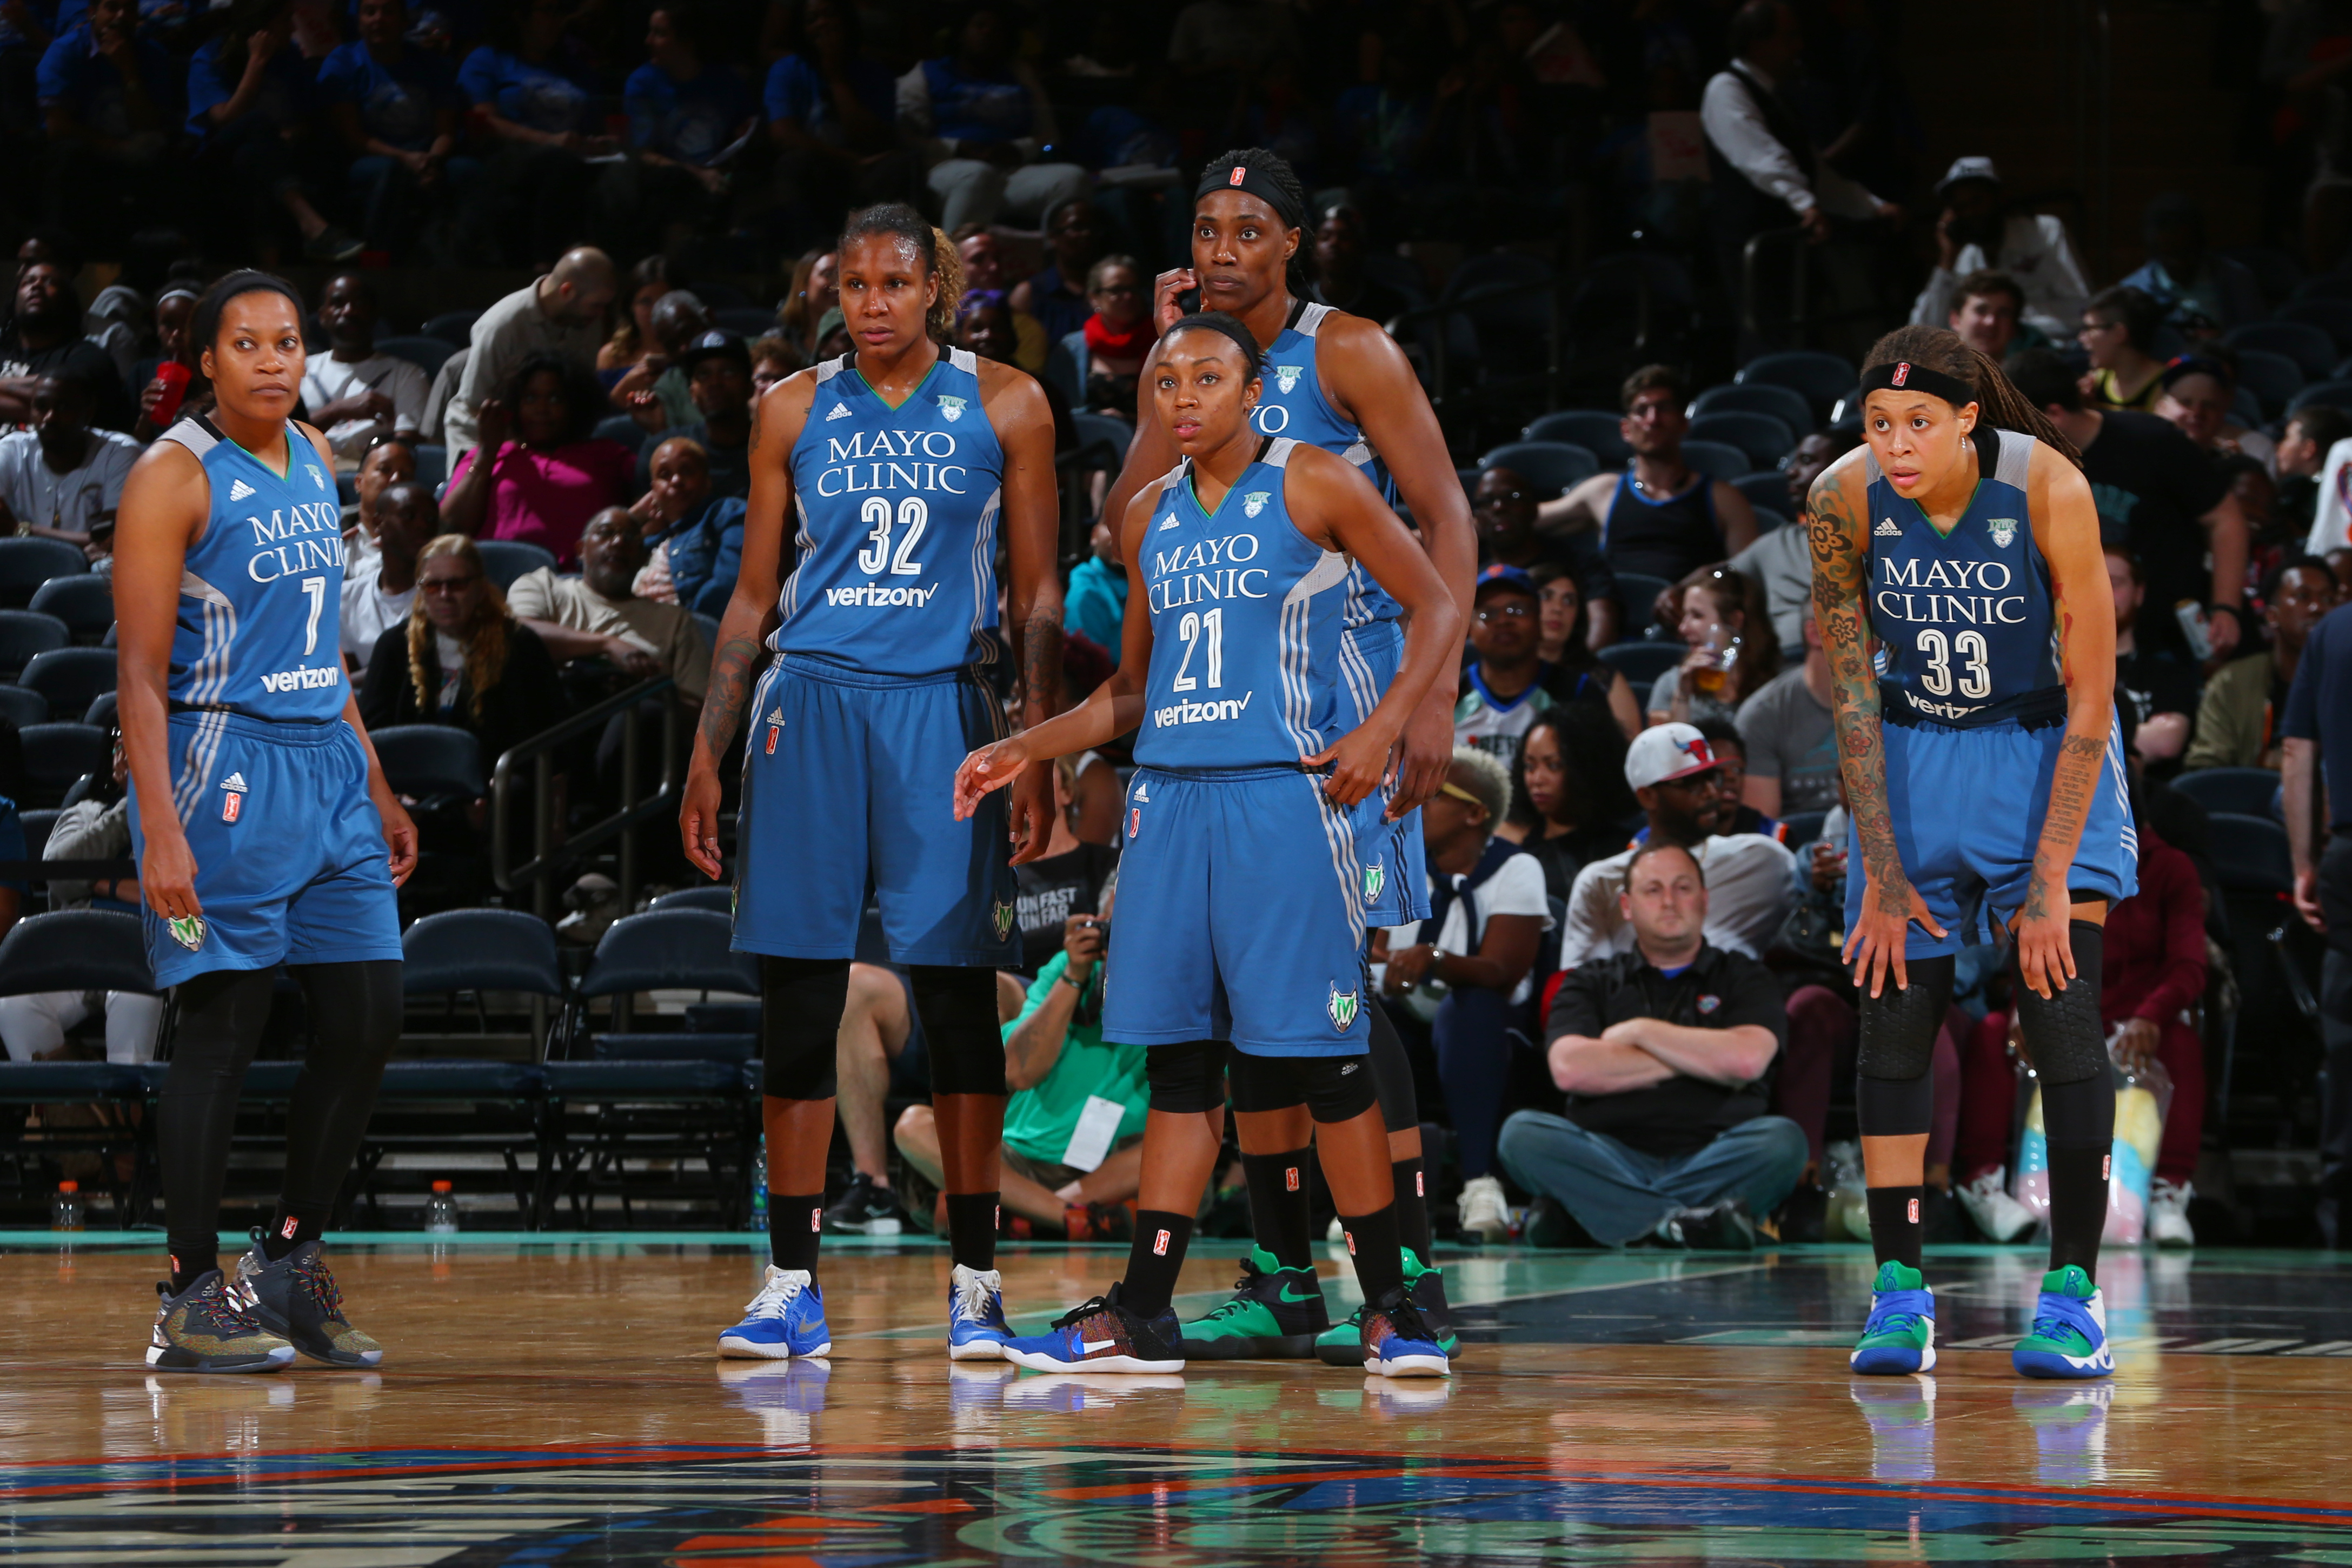 NEW YORK, NY - MAY 31: The Minnesota Lynx look on after a play against the New York Liberty during the game on May 31, 2016 at Madison Square Garden in New York, New York. NOTE TO USER: User expressly acknowledges and agrees that, by downloading and or using this Photograph, user is consenting to the terms and conditions of the Getty Images License Agreement. Mandatory Copyright Notice: Copyright 2016 NBAE (Photo by Mike Stobe/NBAE via Getty Images)